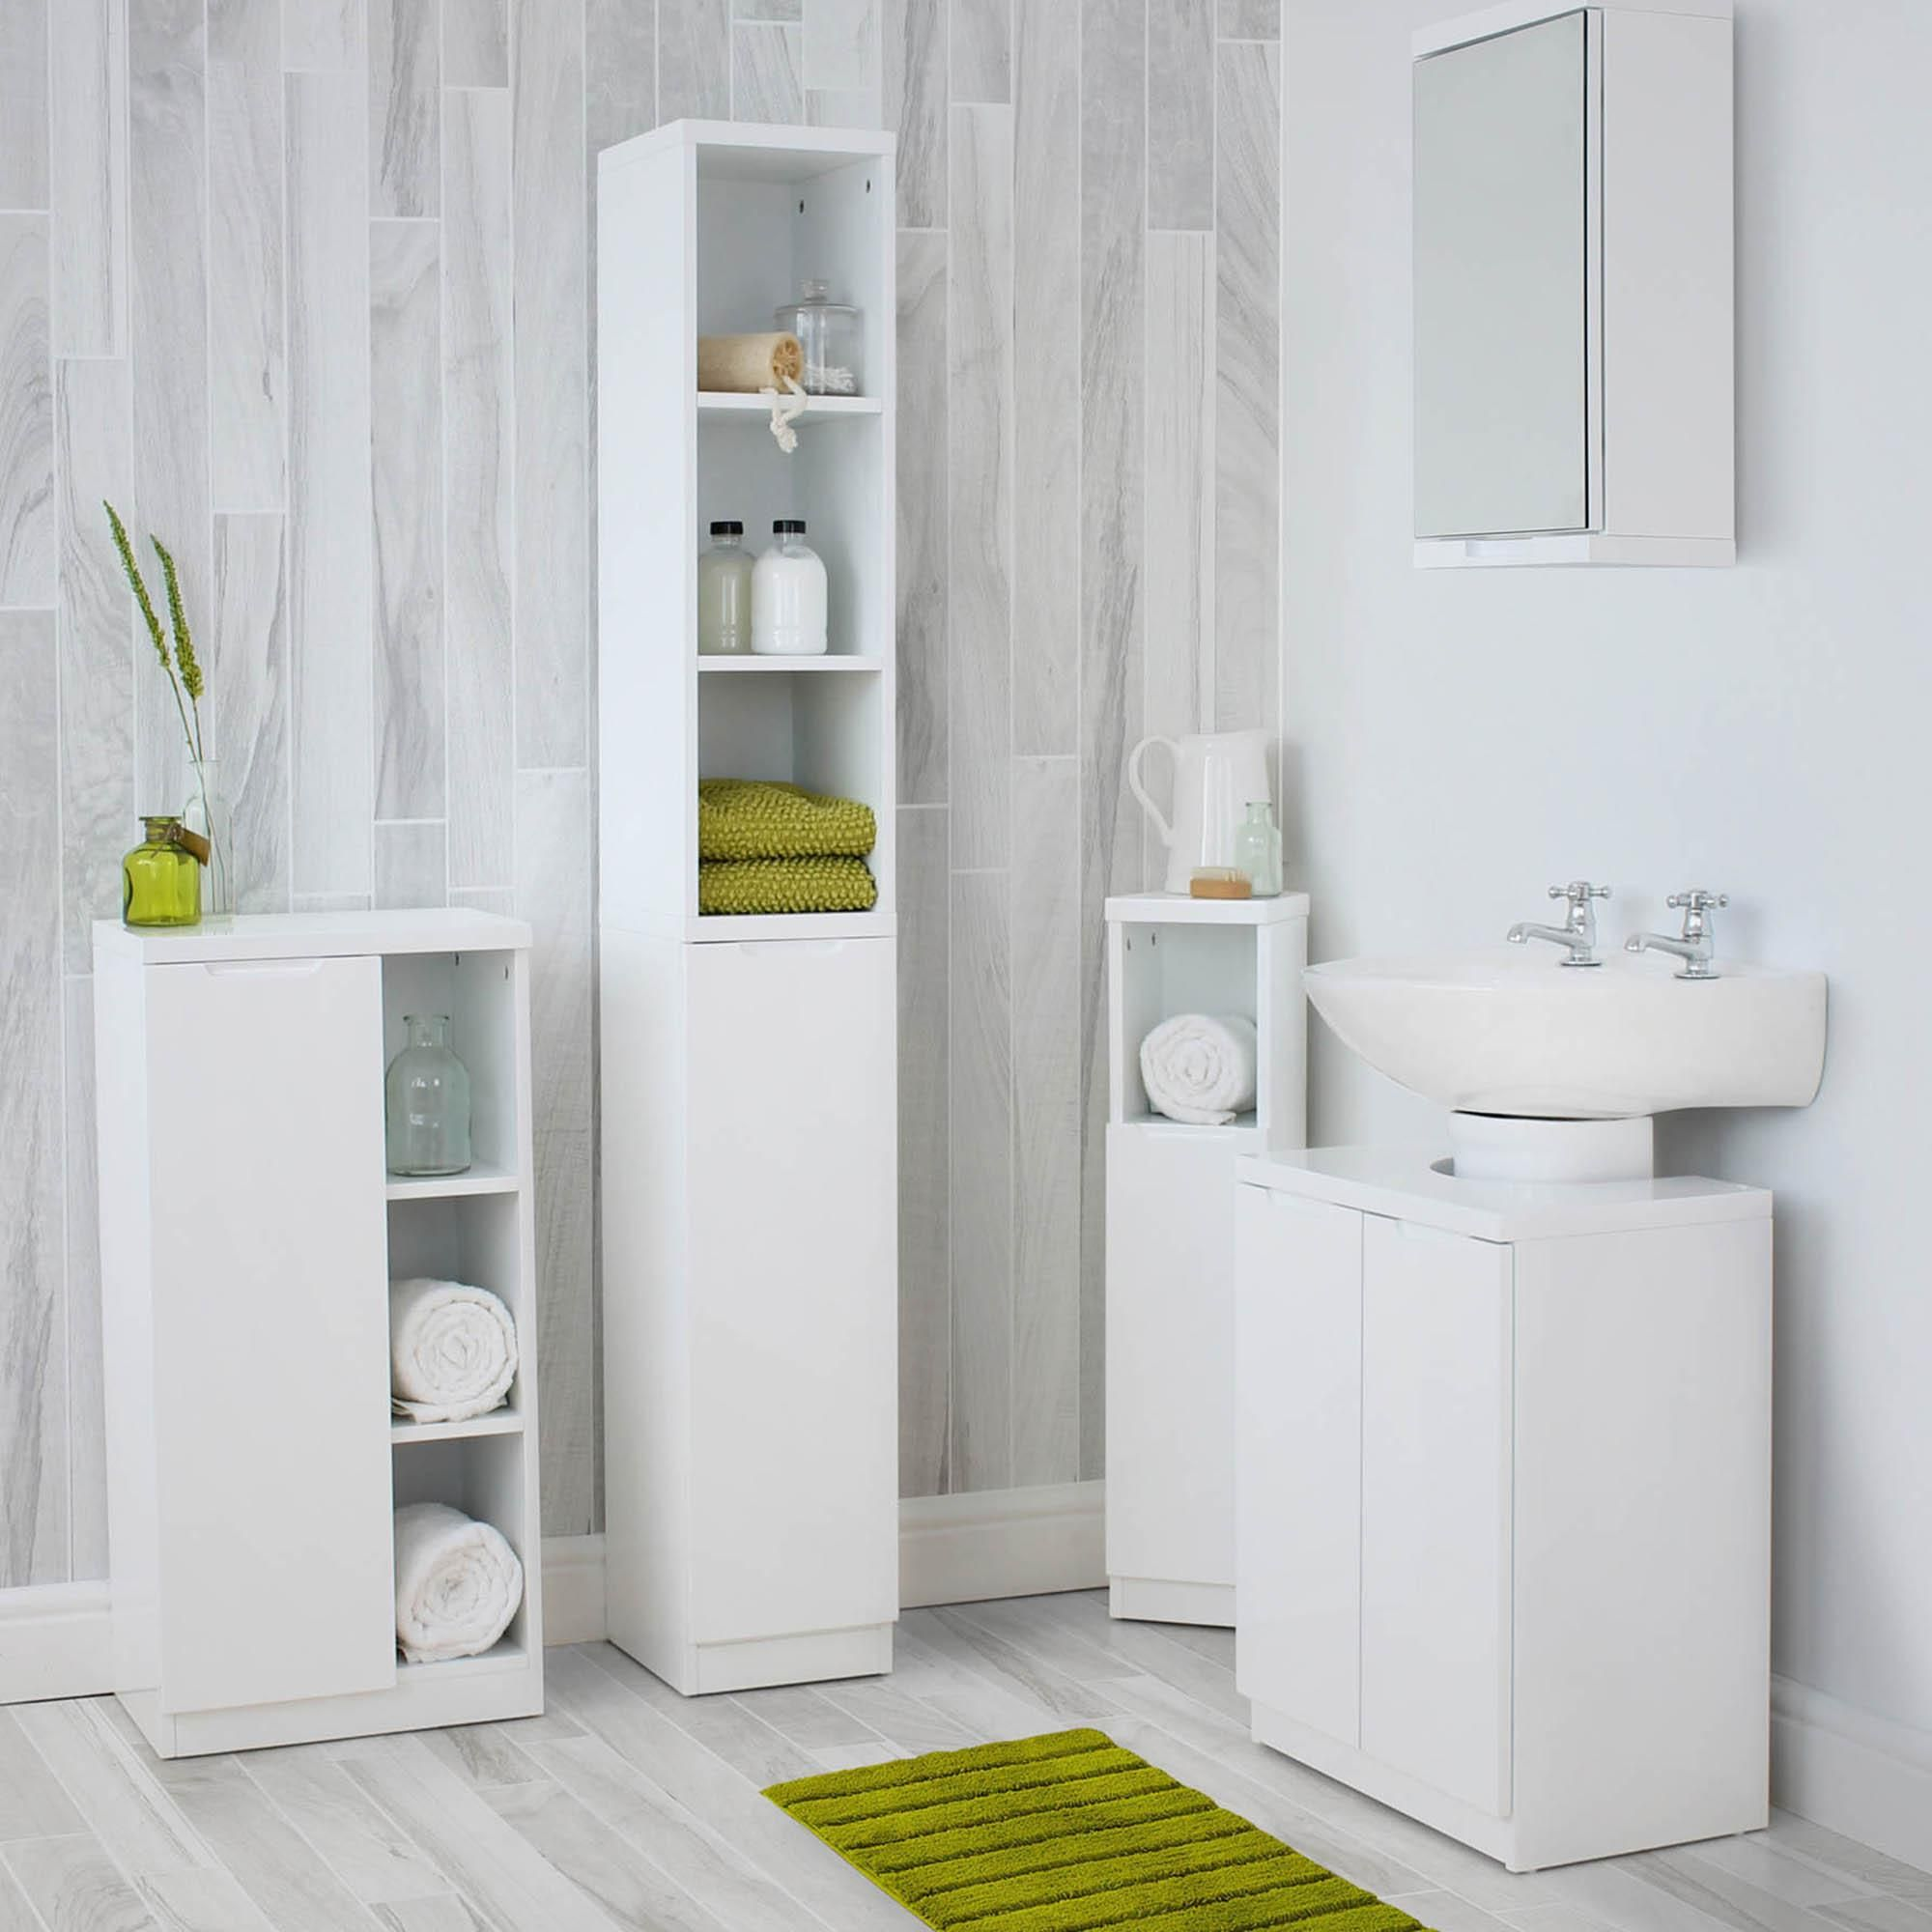 Siena White Corner Cabinet Bathroom Tallboy Bathroom Wall Cabinets White Bathroom Storage Units